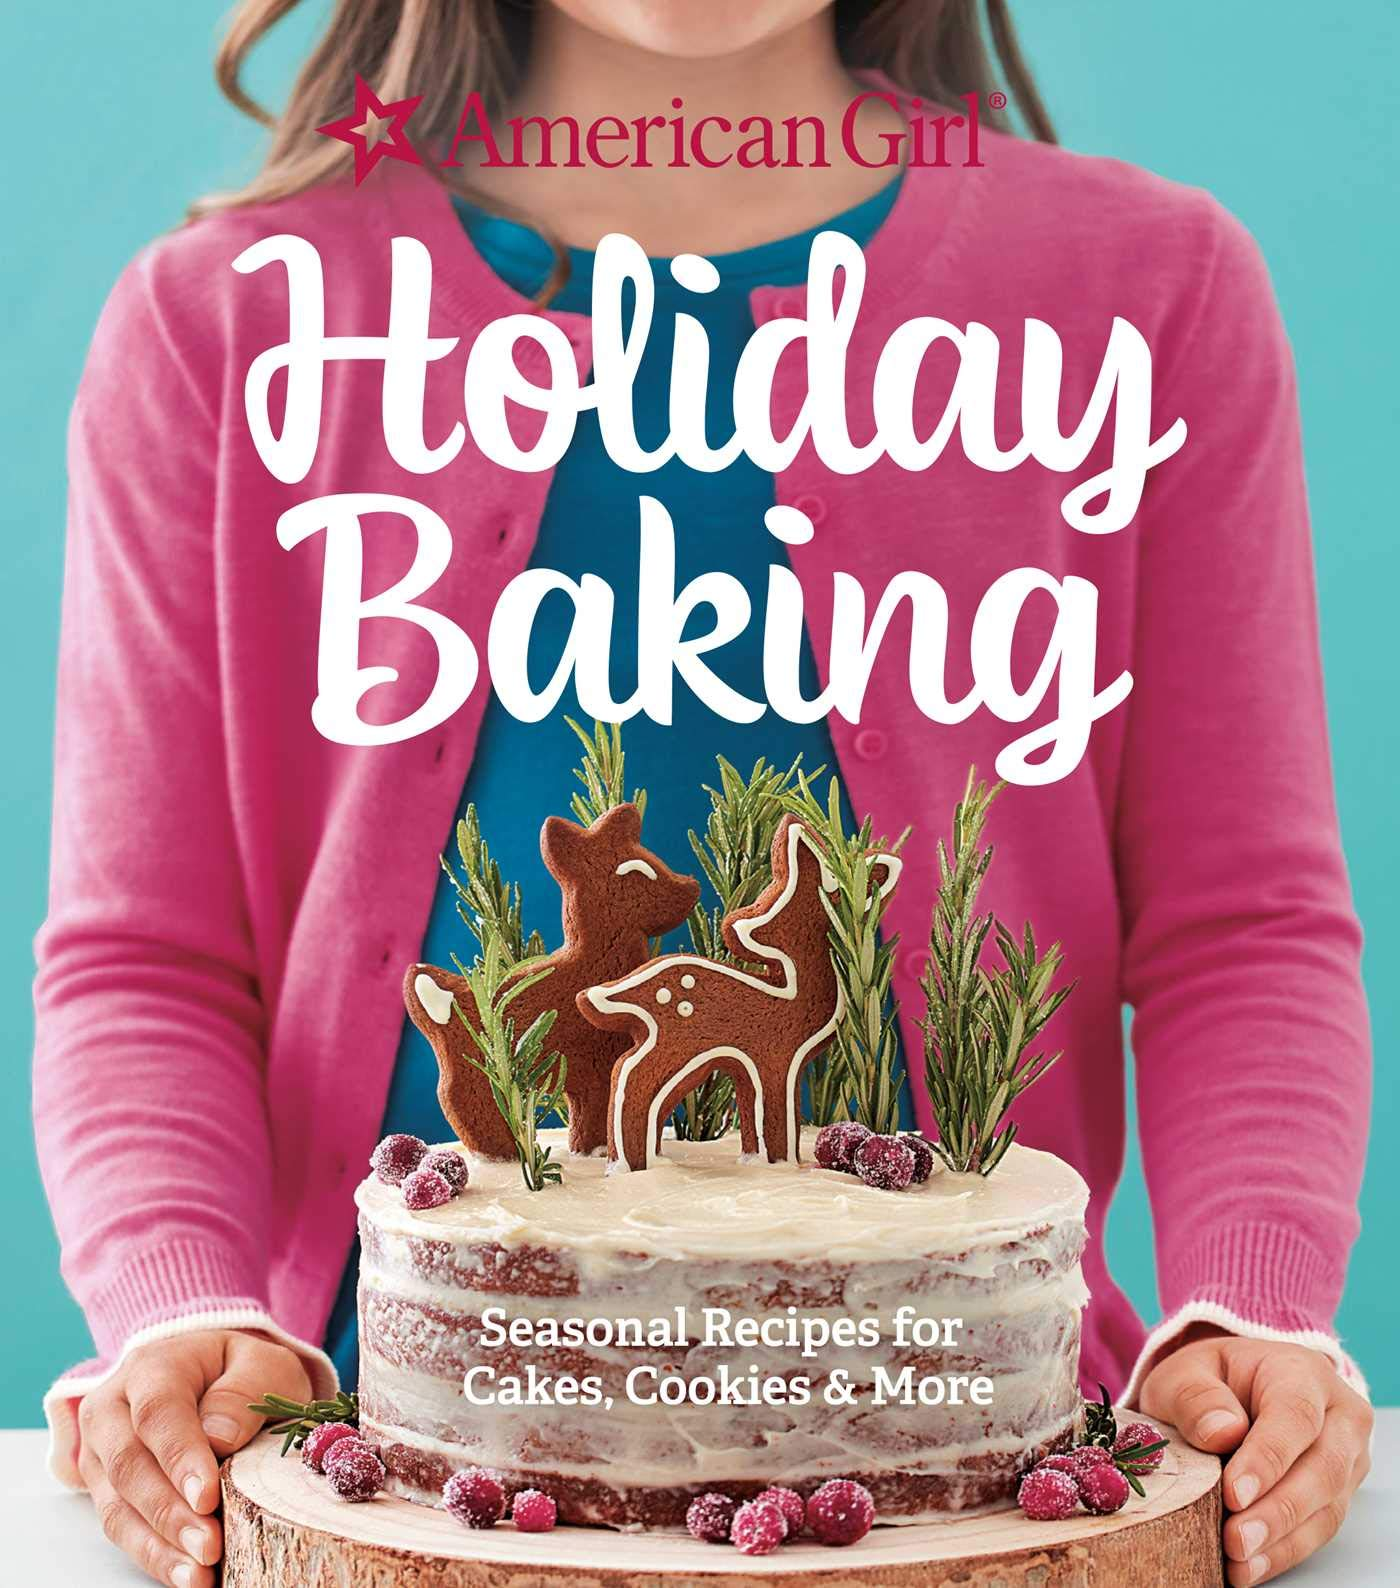 American Girl Holiday Baking (Williams-Sonoma)